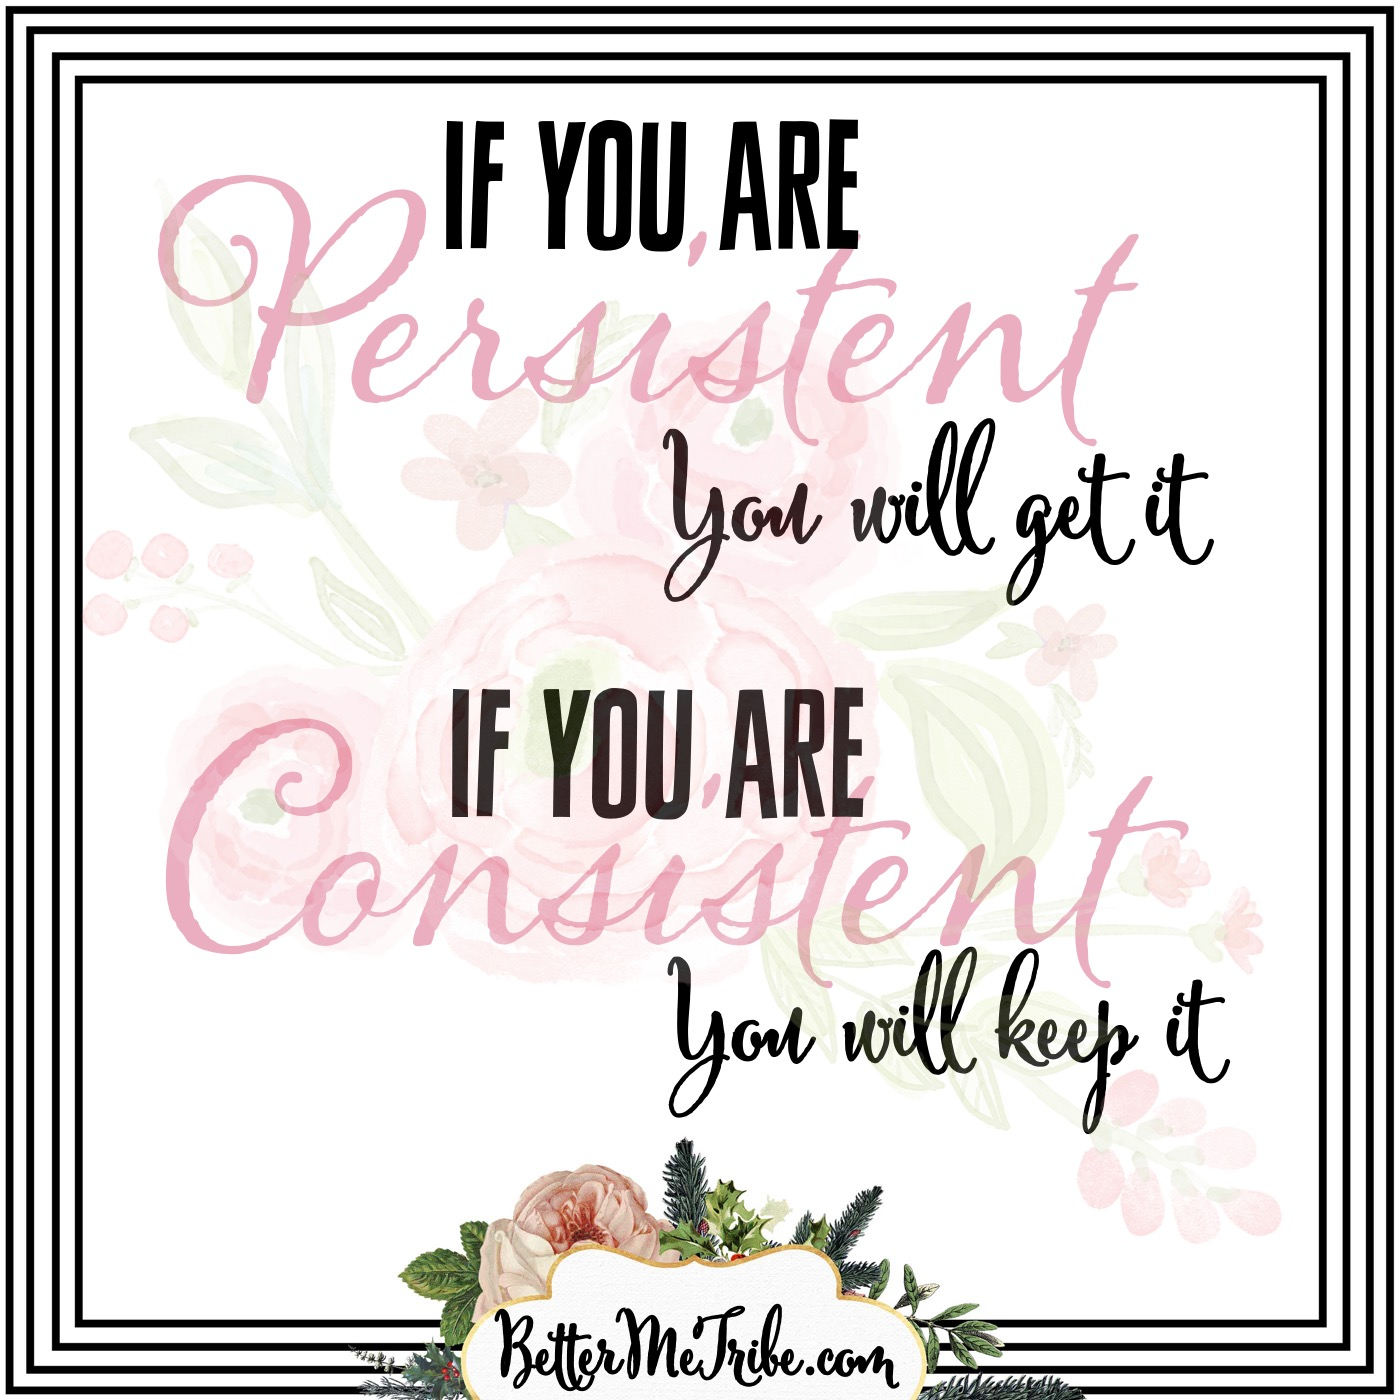 Be consistently persistent!